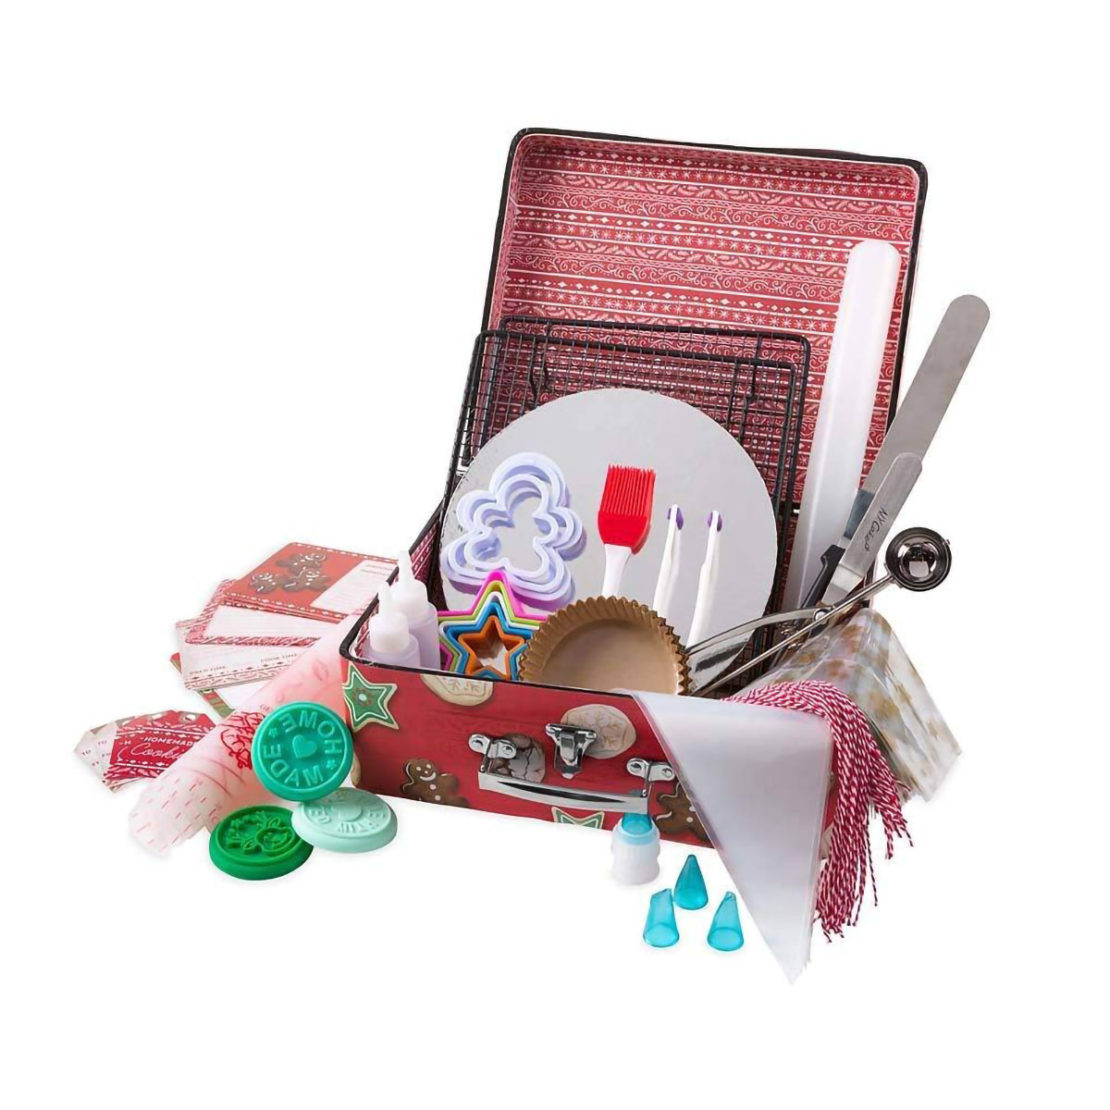 Crafty Creations Cookie Kit with Case